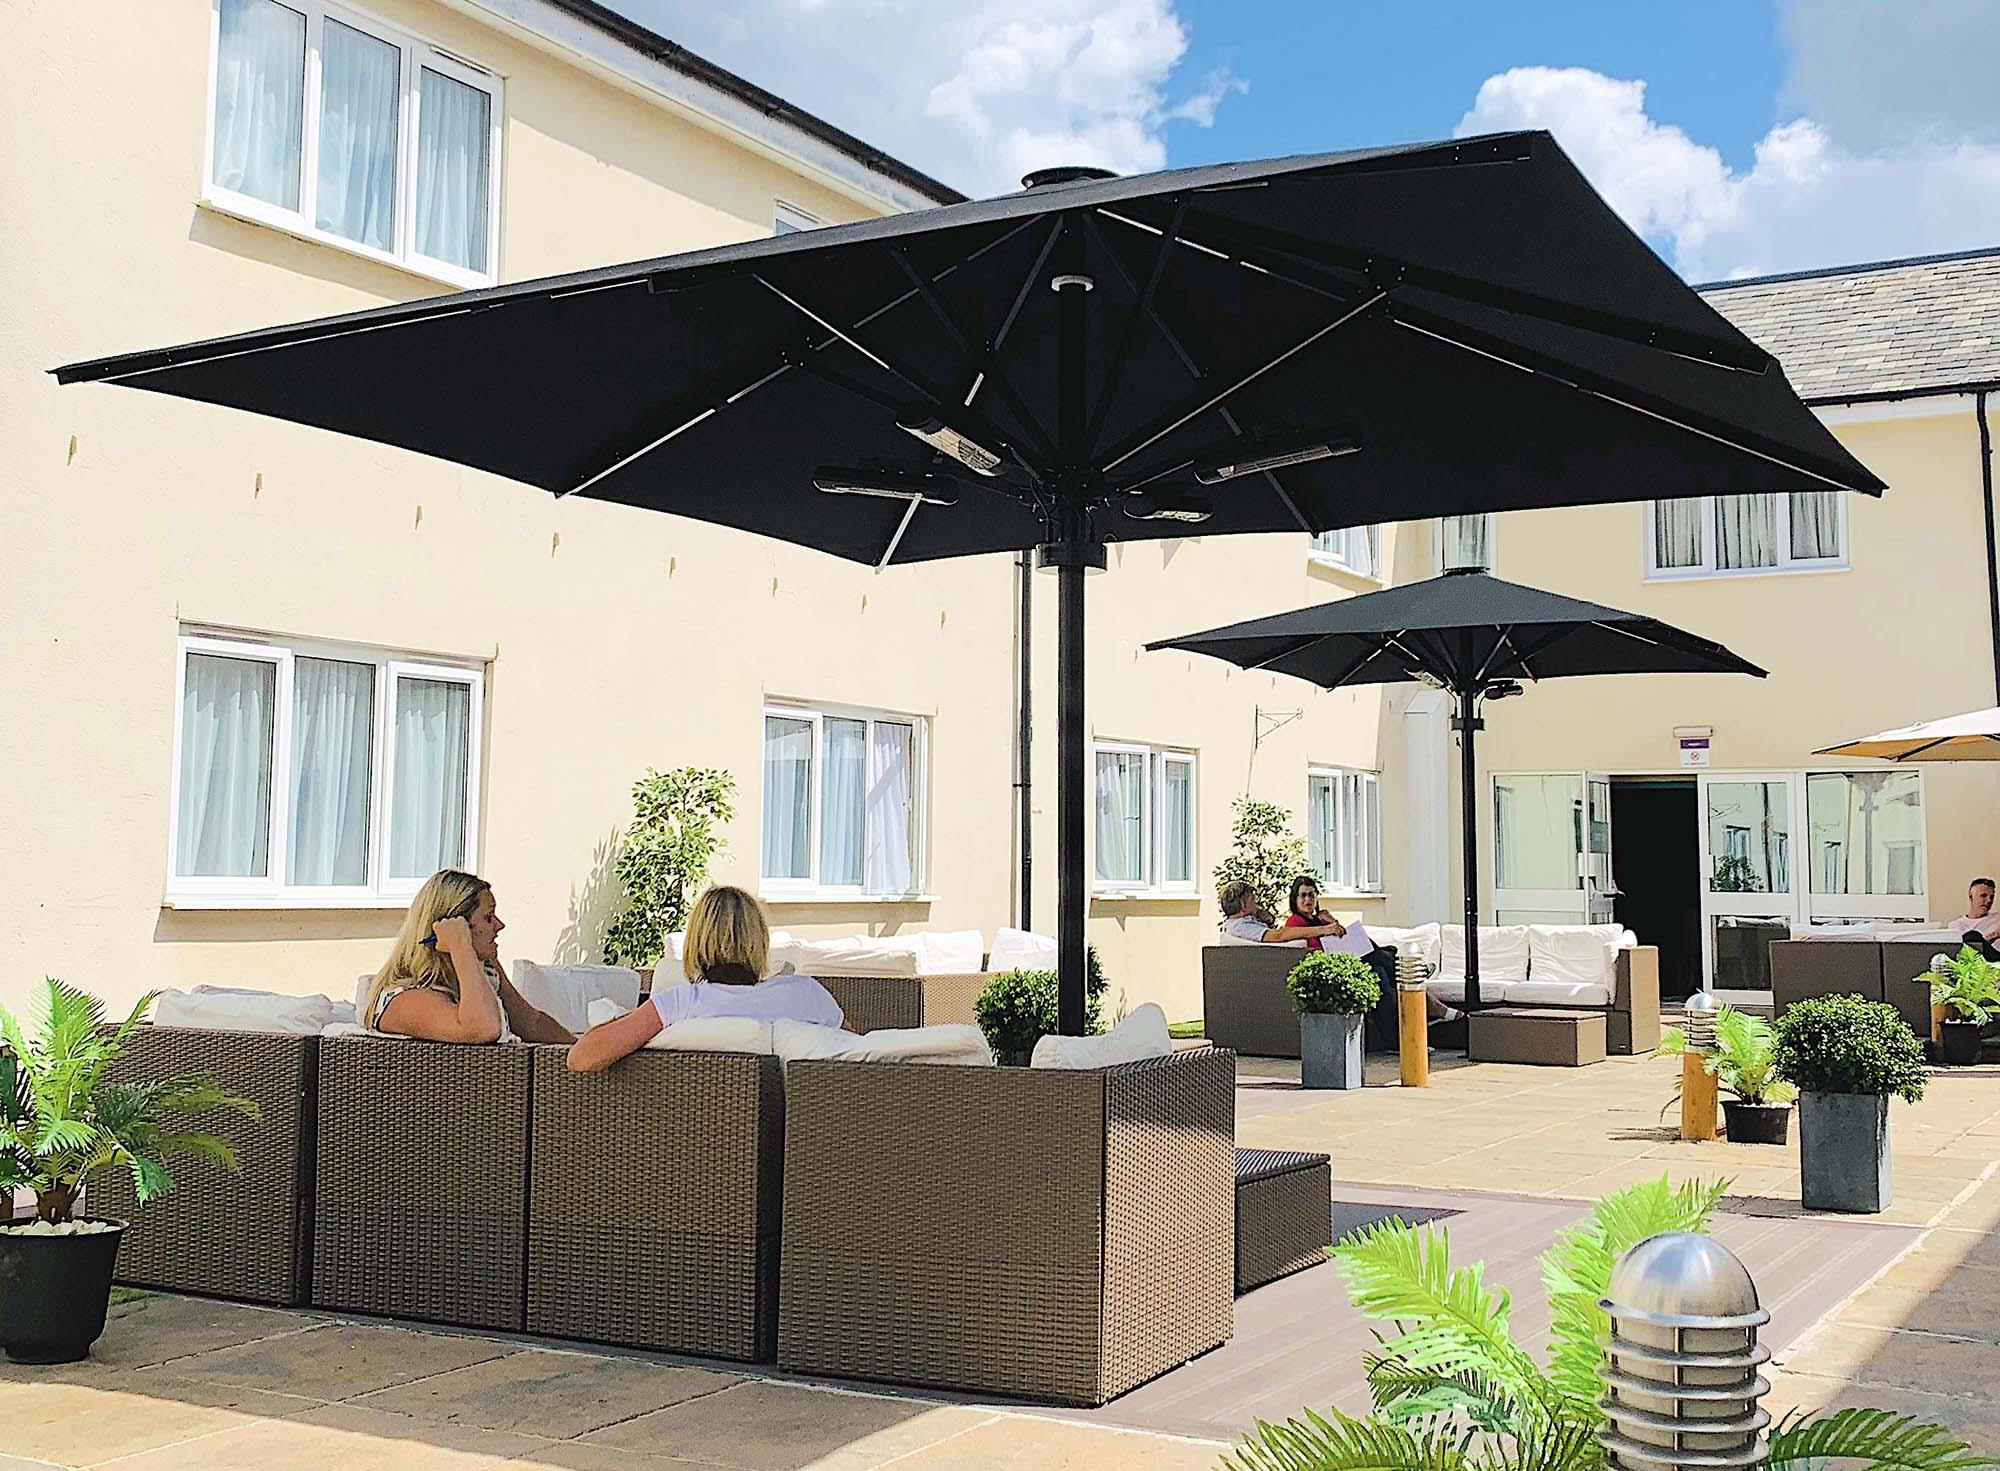 twin Umbrellas with outdoor seating area